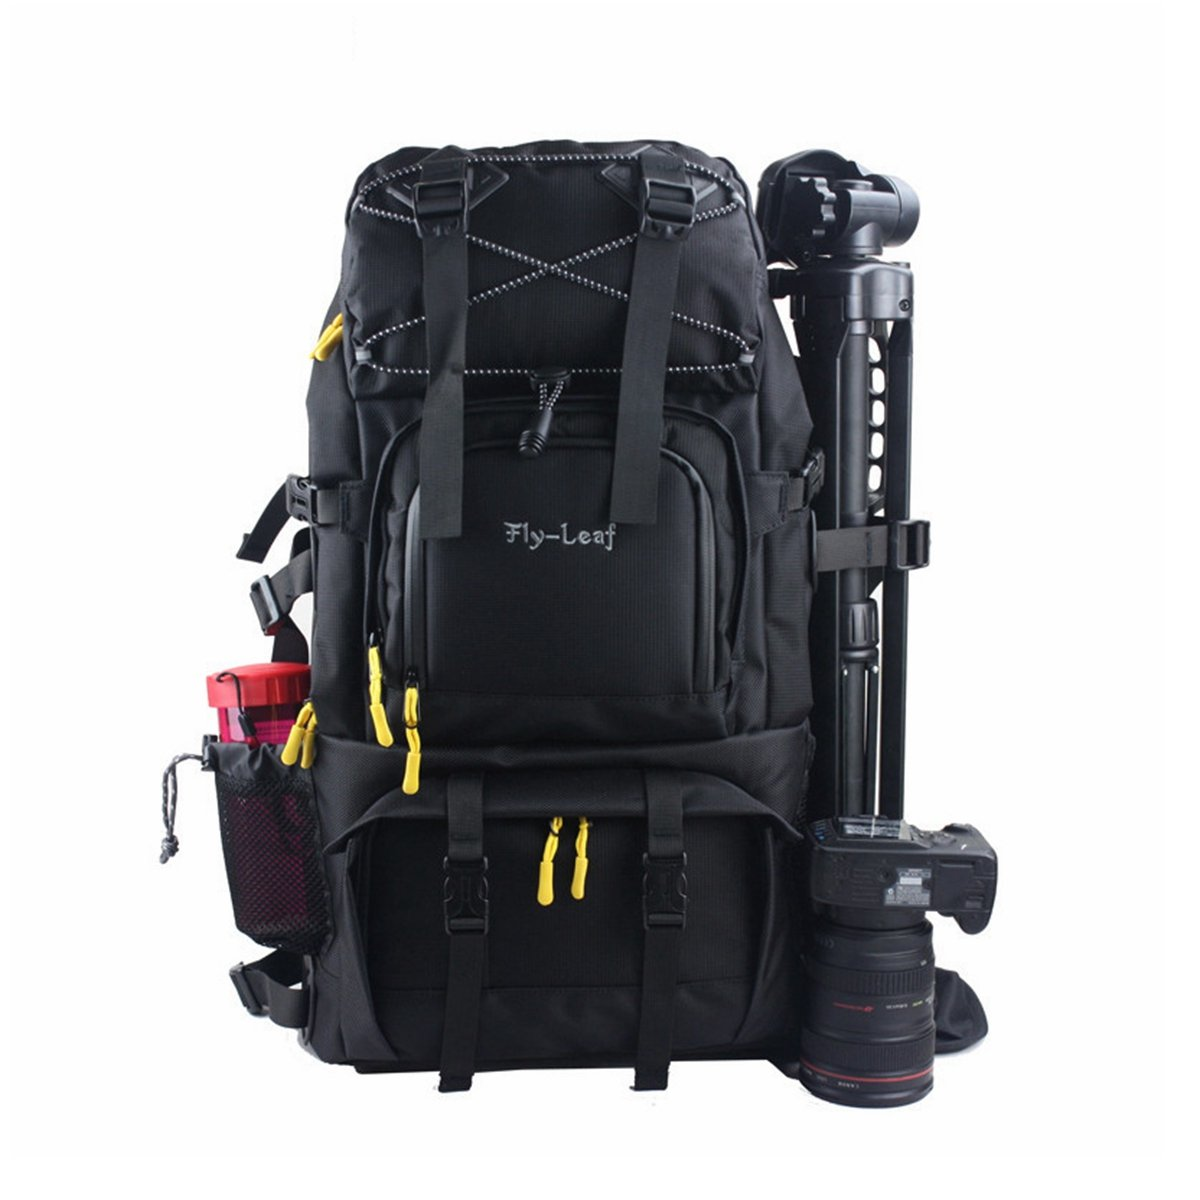 G-raphy Camera Backpack Bag Hiking Travel Backpack for all DSLR SLR Cameras , Laptops , Tripods and Accessories (Black) by G-raphy